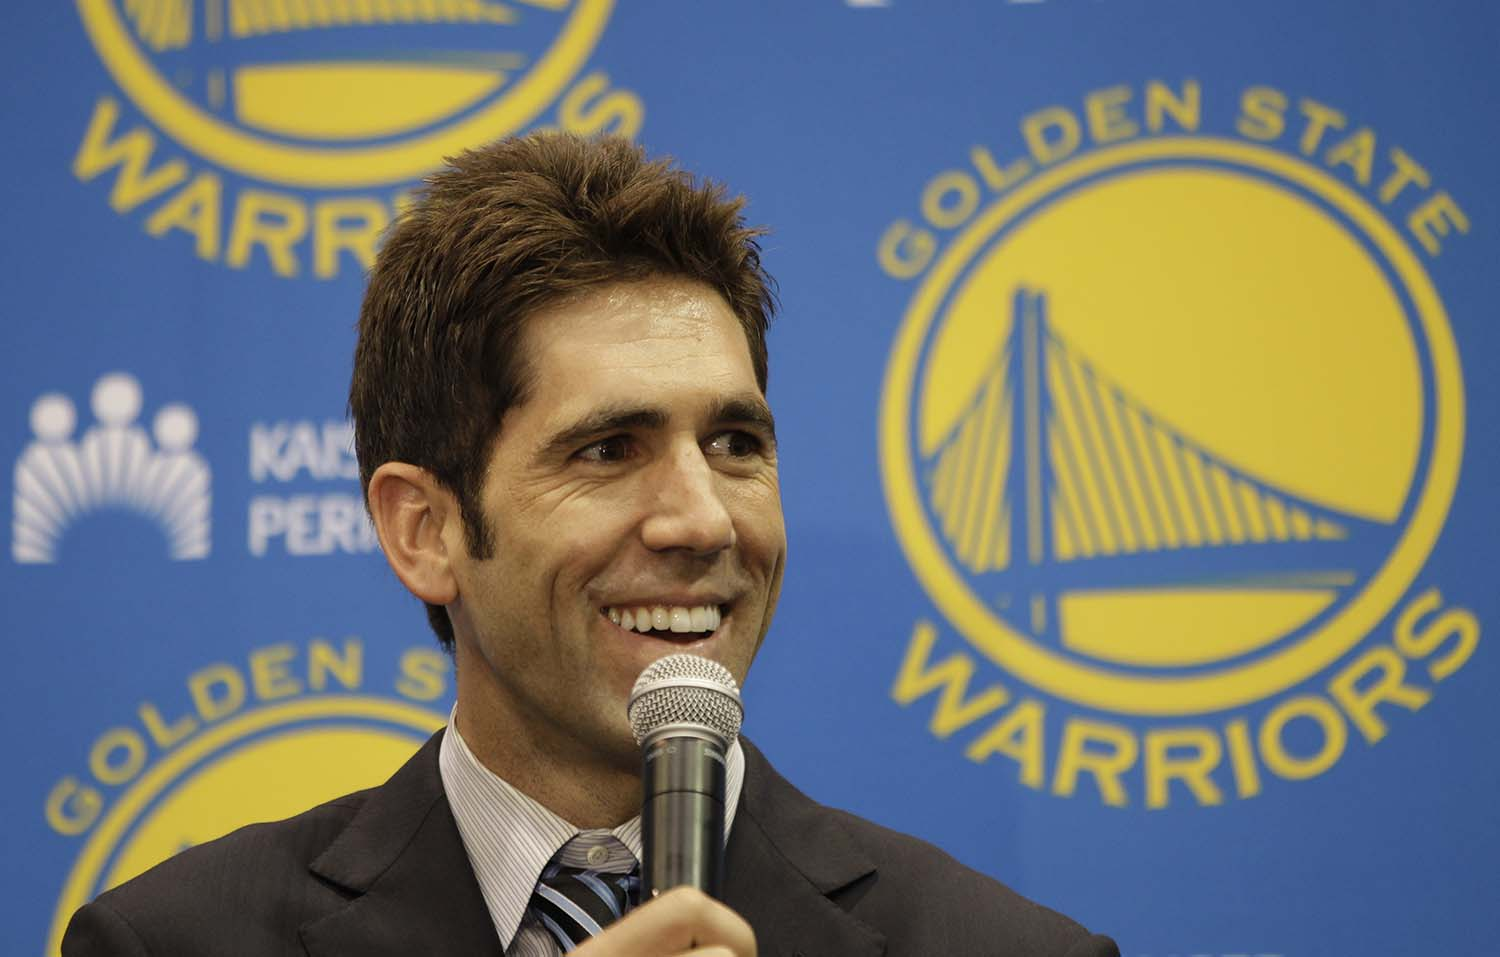 Golden State Warriors GM Bob Myers  during a news conference at Warriors headquarters in Oakland, Calif., Monday, July 2, 2012. (AP Photo/Paul Sakuma)